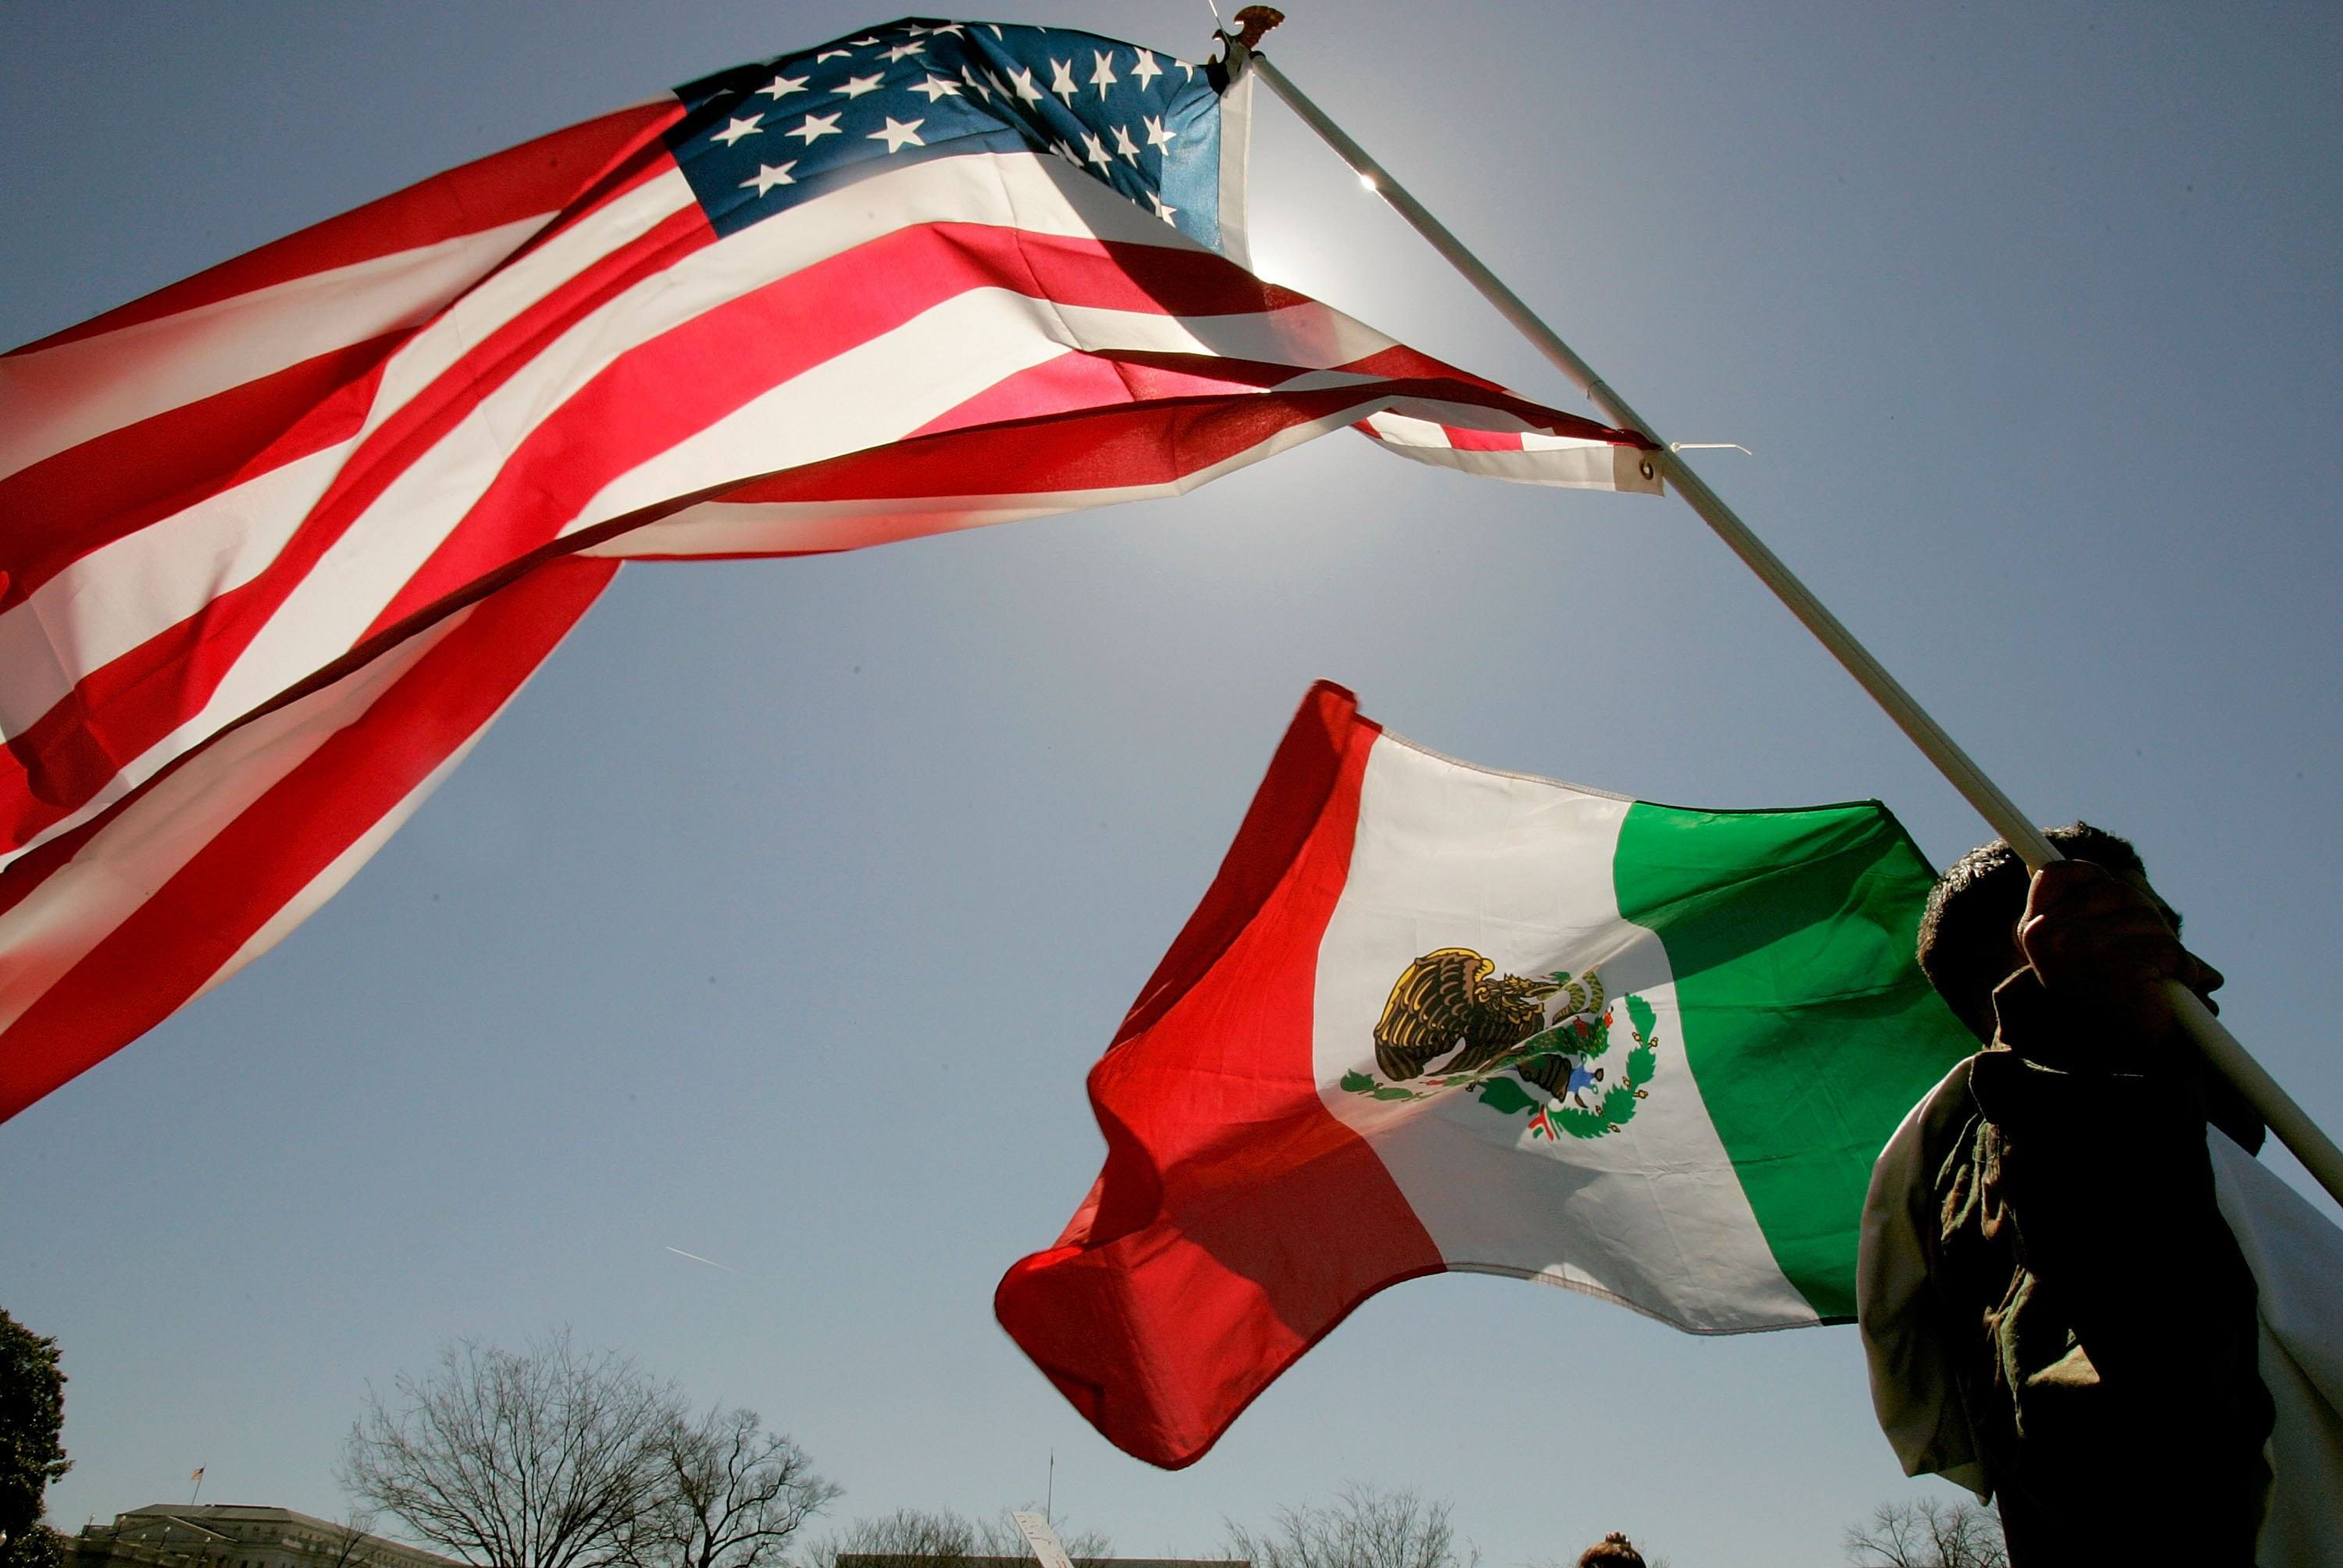 A protester holds the flags of both the United States and Mexico